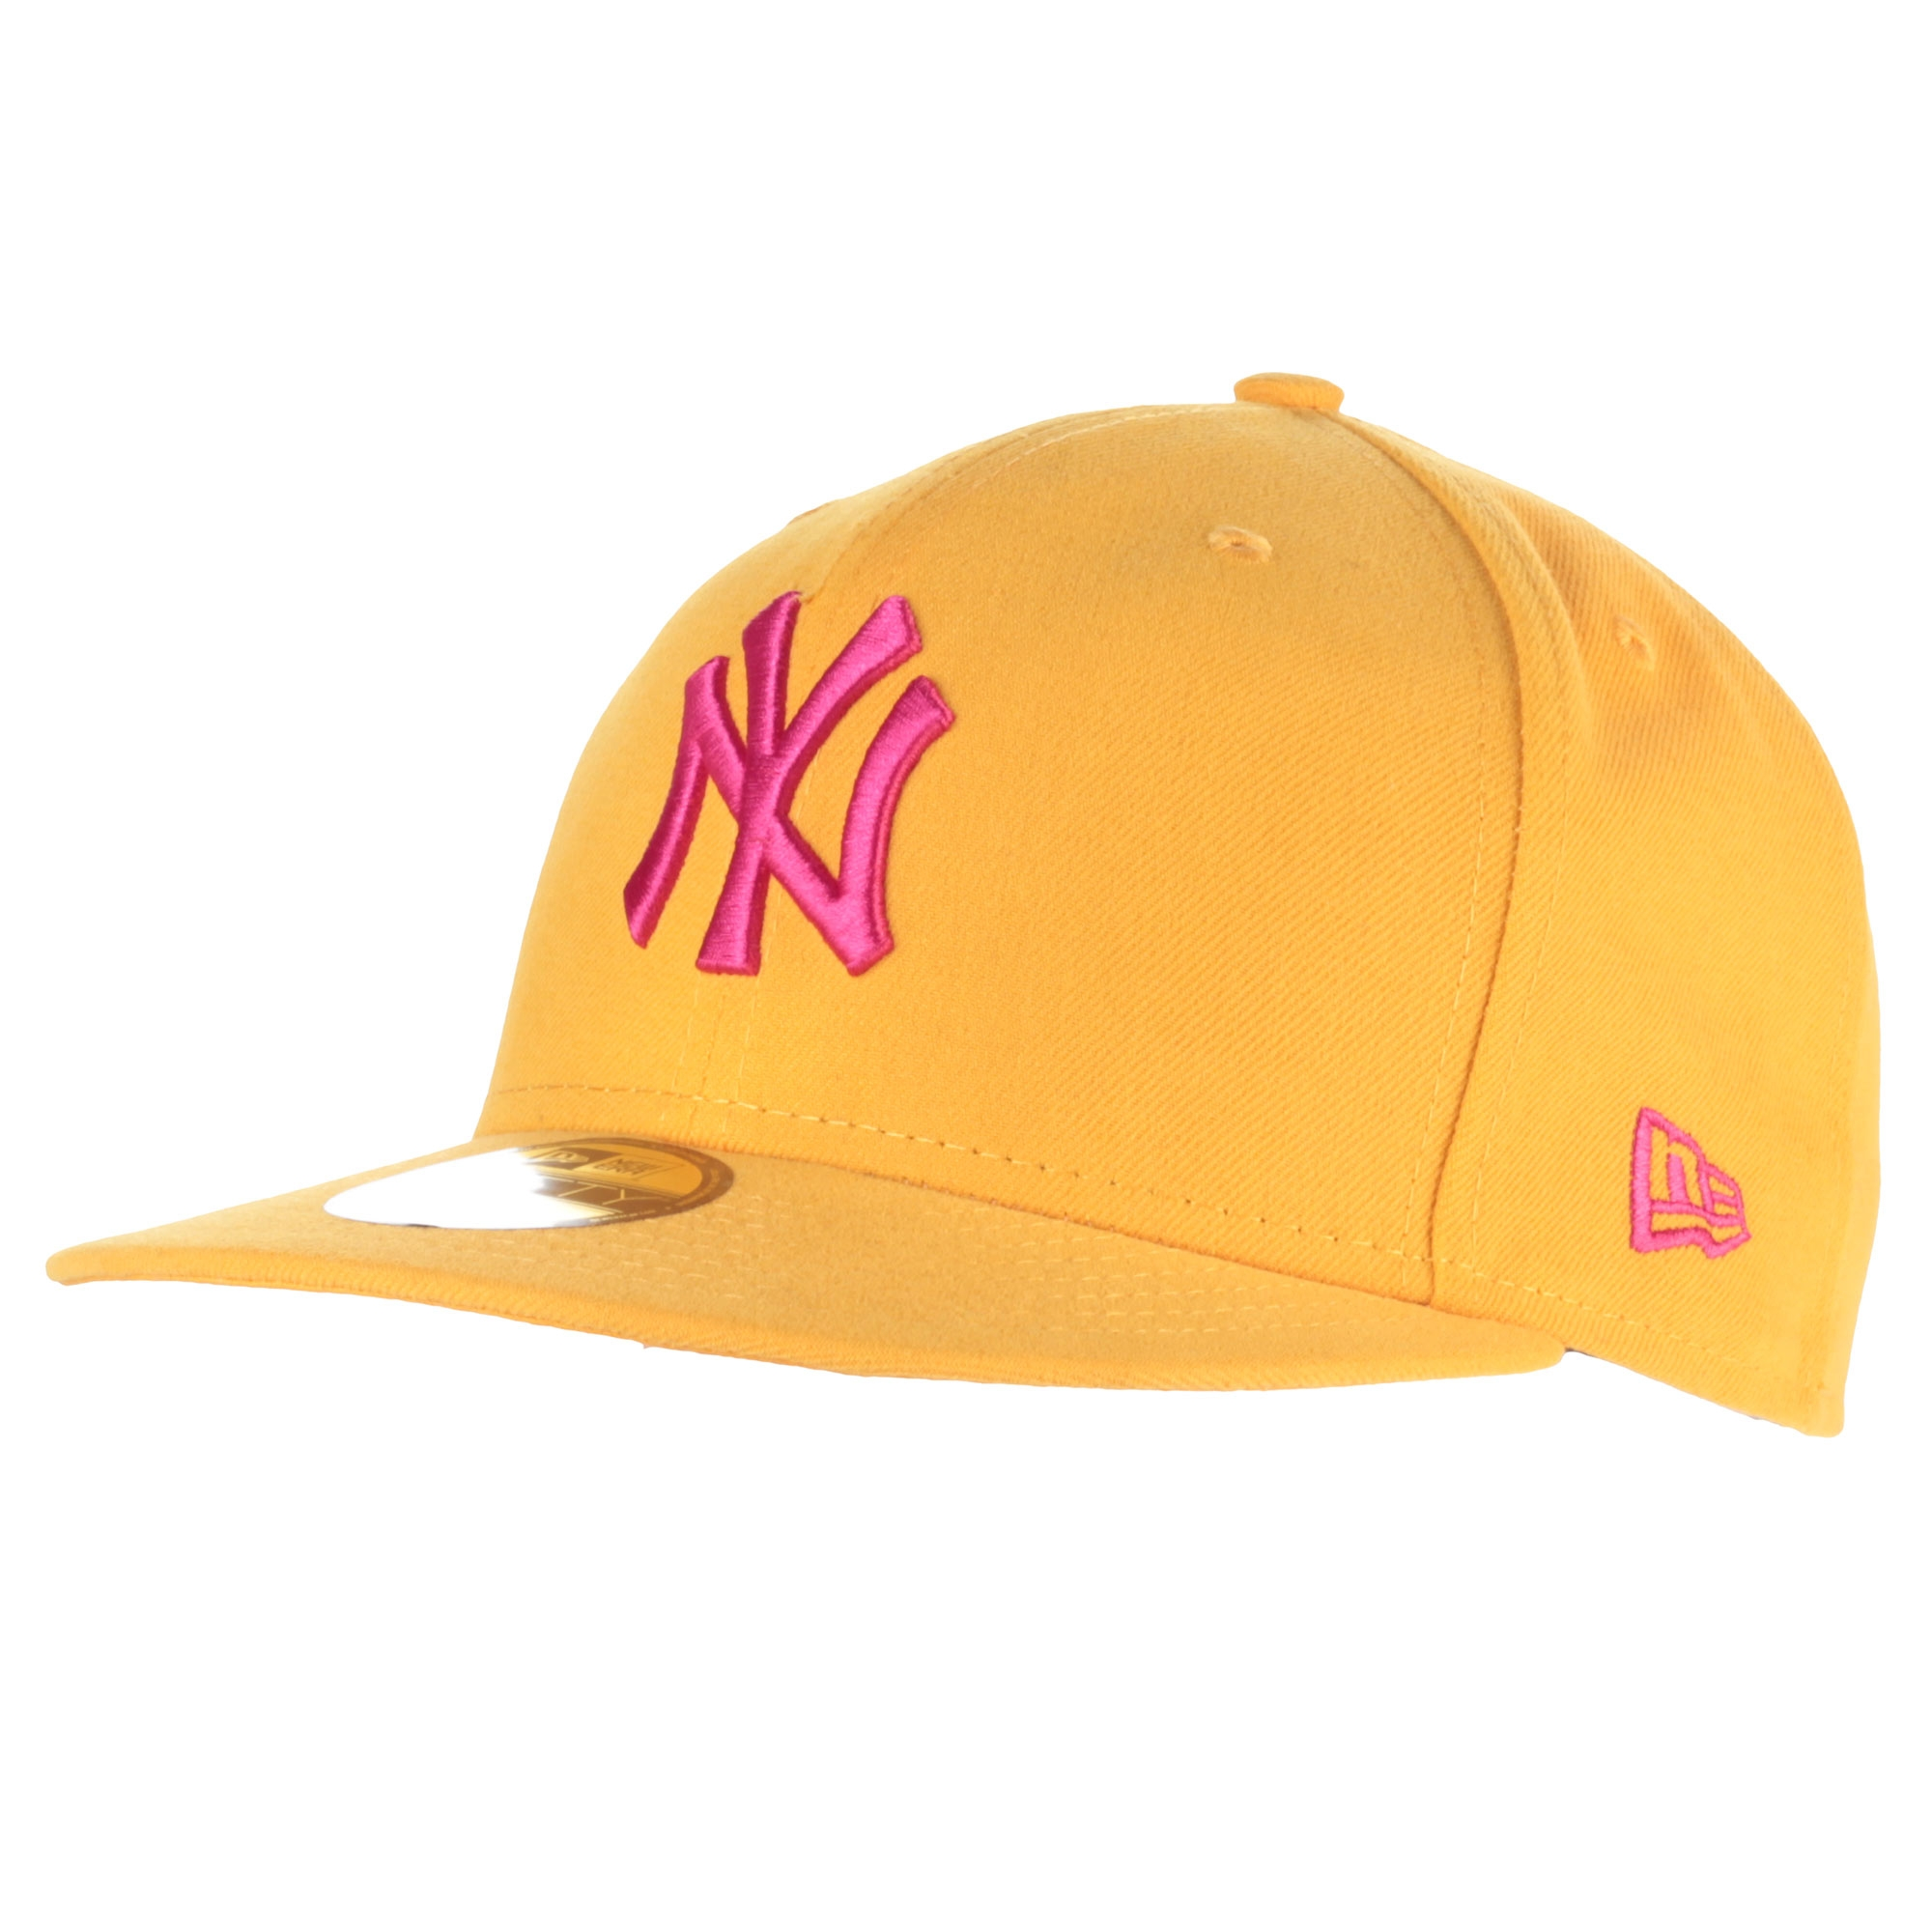 Kšiltovka New Era New York Yankees 59Fifty gld/rse